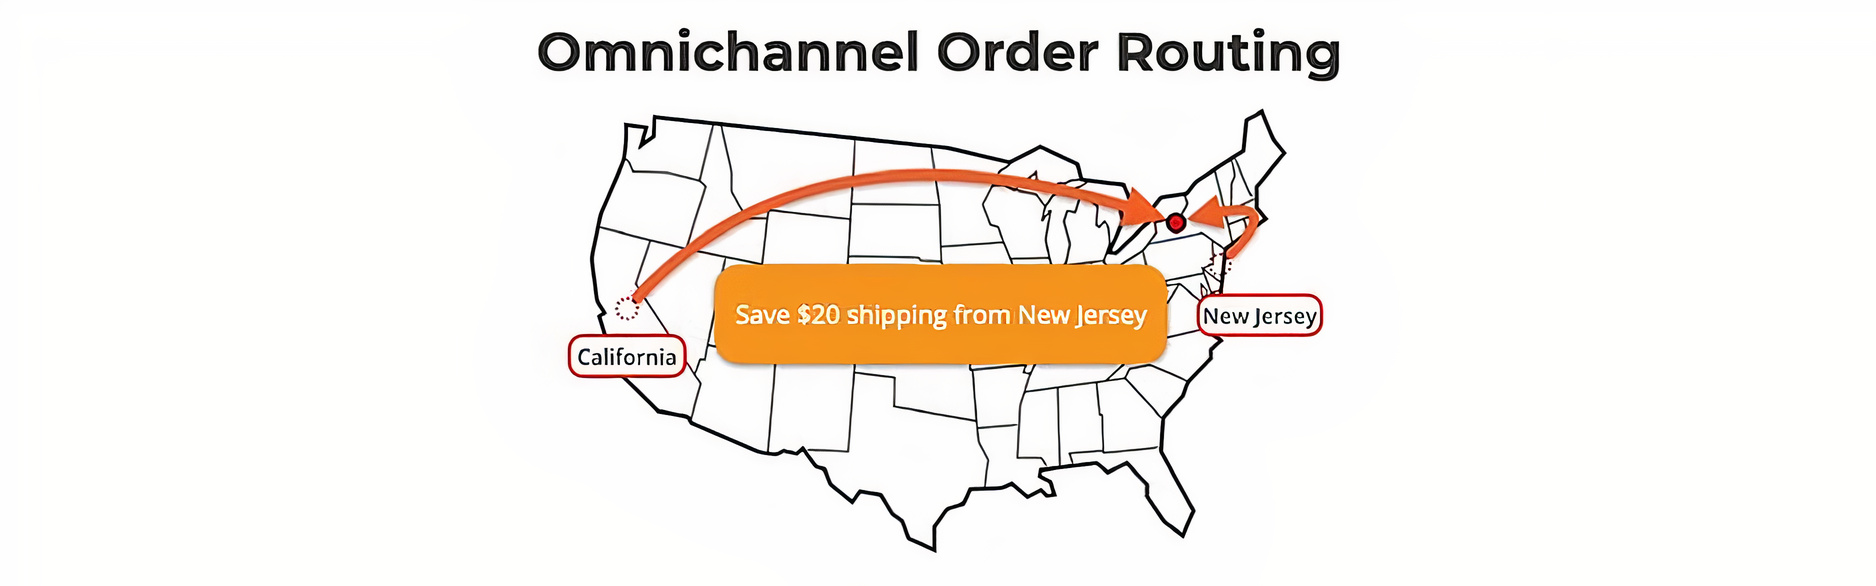 How To Achieve Speedy Delivery With Omnichannel Order Routing